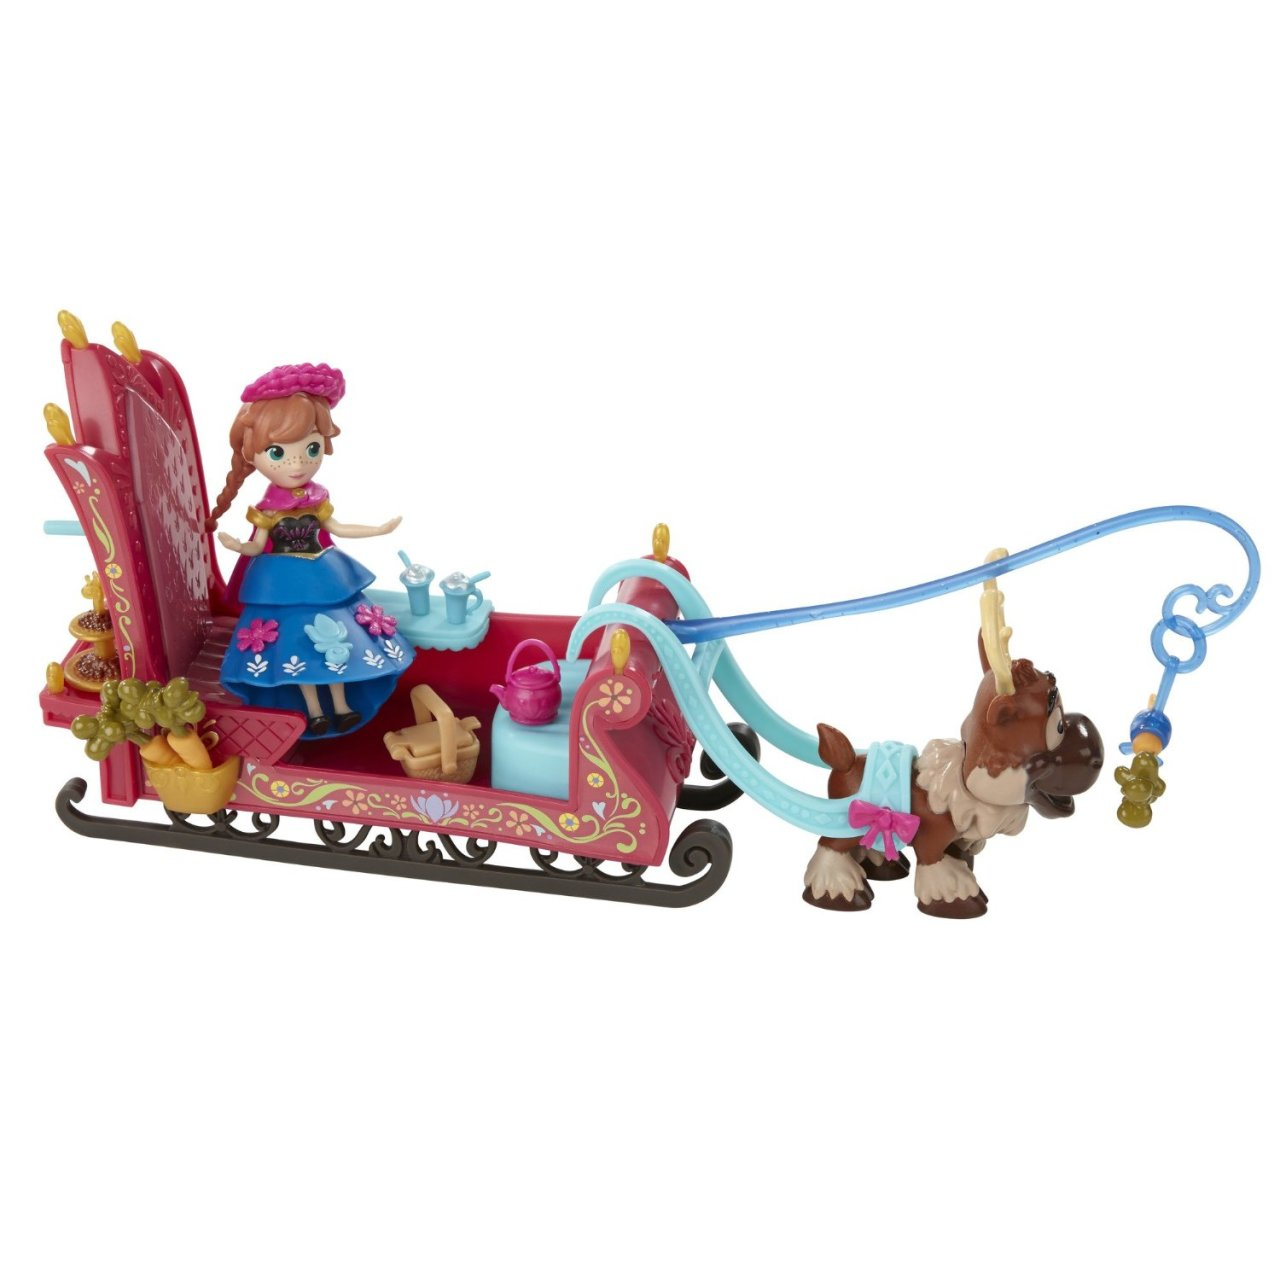 set tematic cu figurina disney frozen micul regat - sania annei